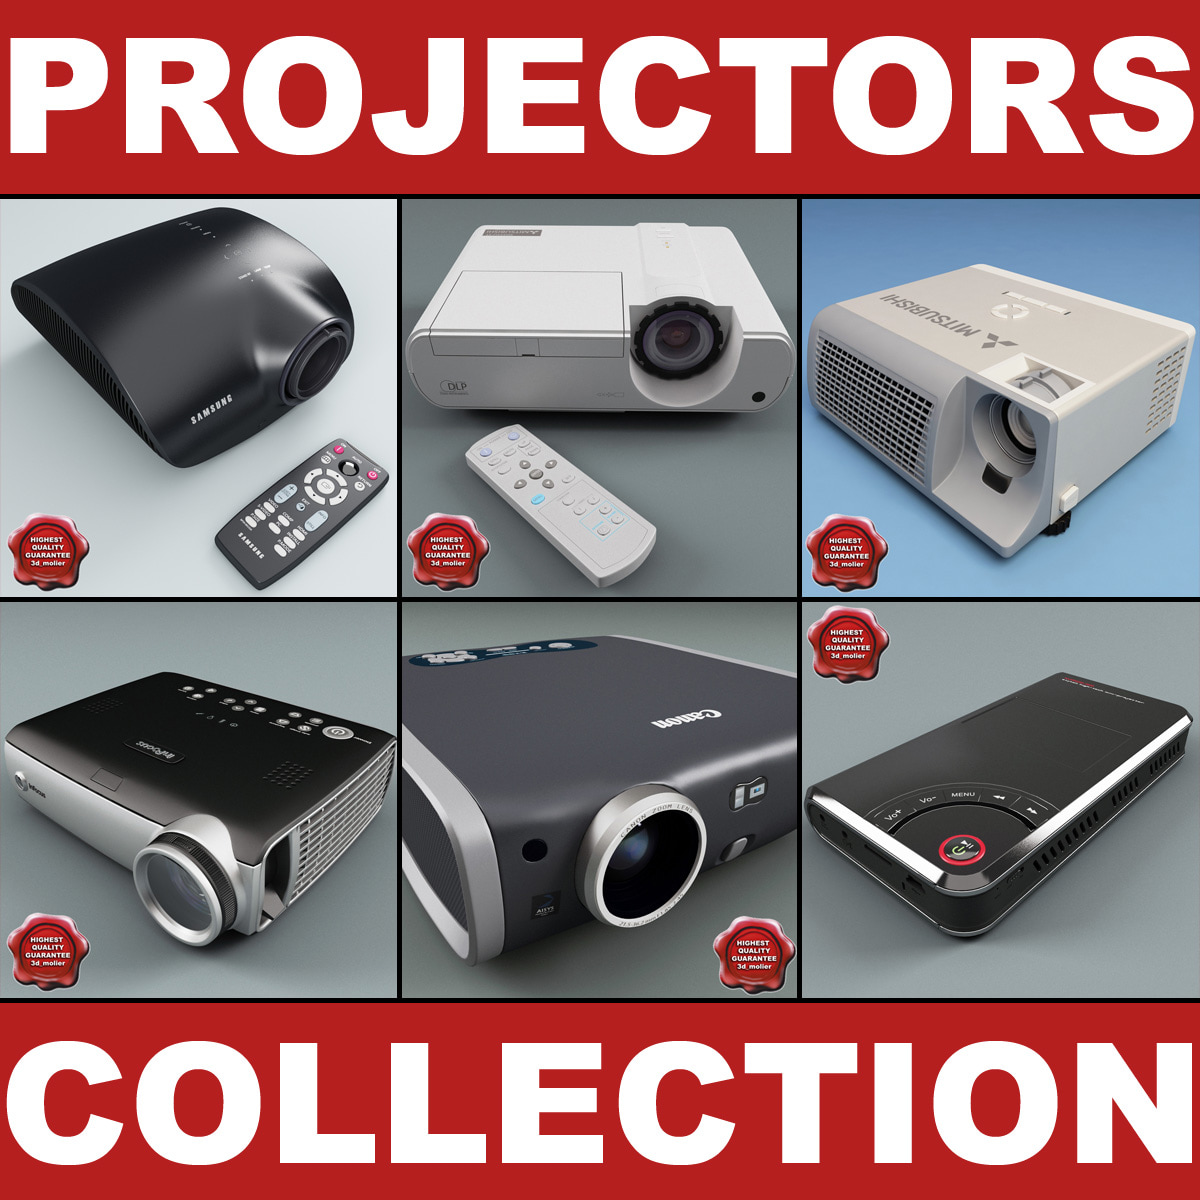 Projectors_Collection_V3_000.jpg